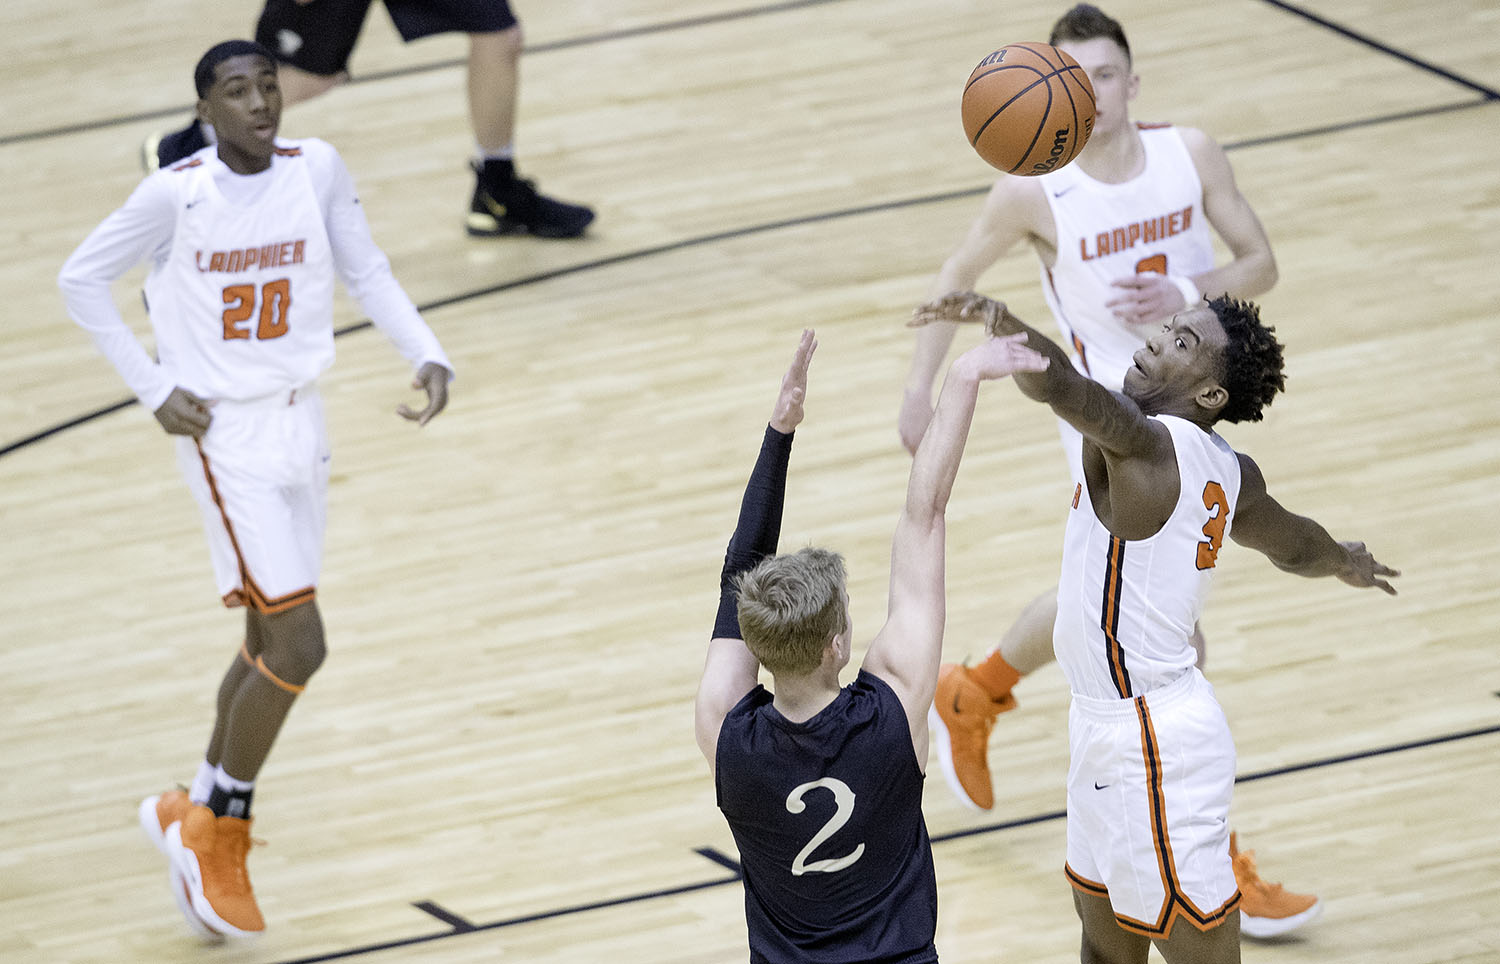 Sacred Heart-Griffin's Joe Gustafson fires a three under pressure from Lanphier's Karl Wright during the Boys City Tournament at the Bank of Springfield Center Thursday, Jan. 17, 2019.  [Ted Schurter/The State Journal-Register]